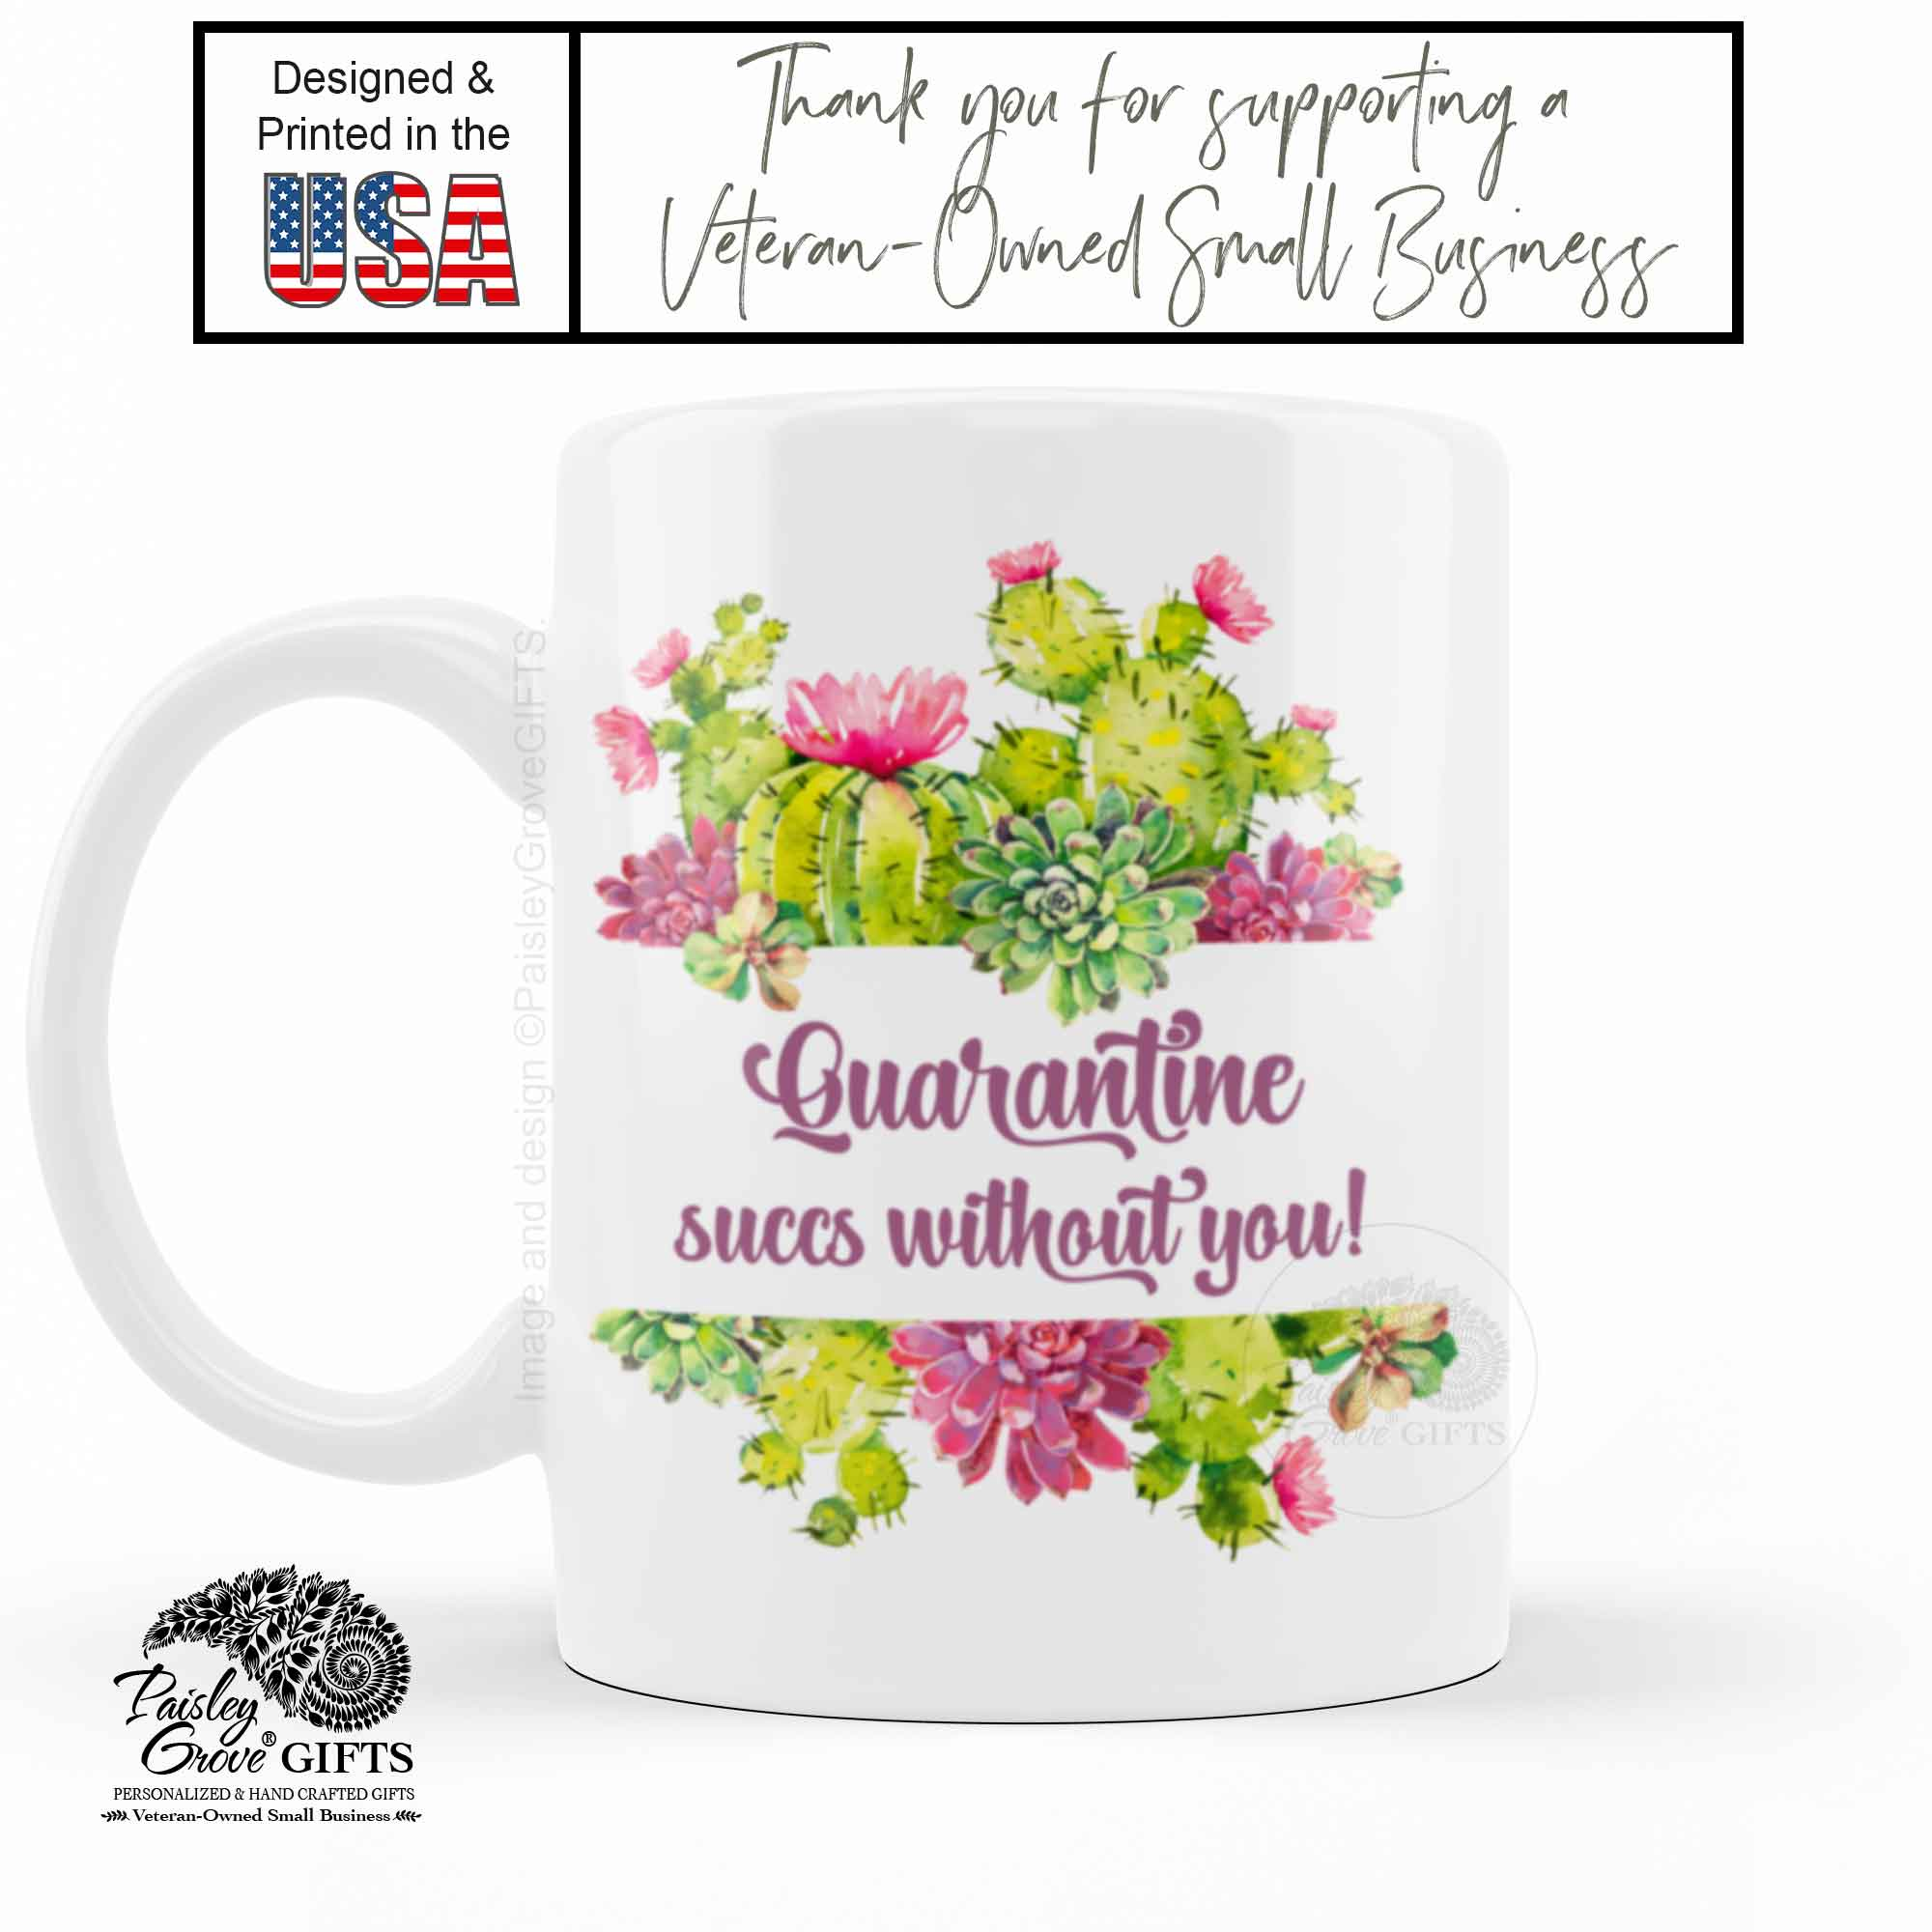 CopyrightPaisleyGroveGIFTS P010a Quarantine succs without you coffee cup from Veteran owned small business